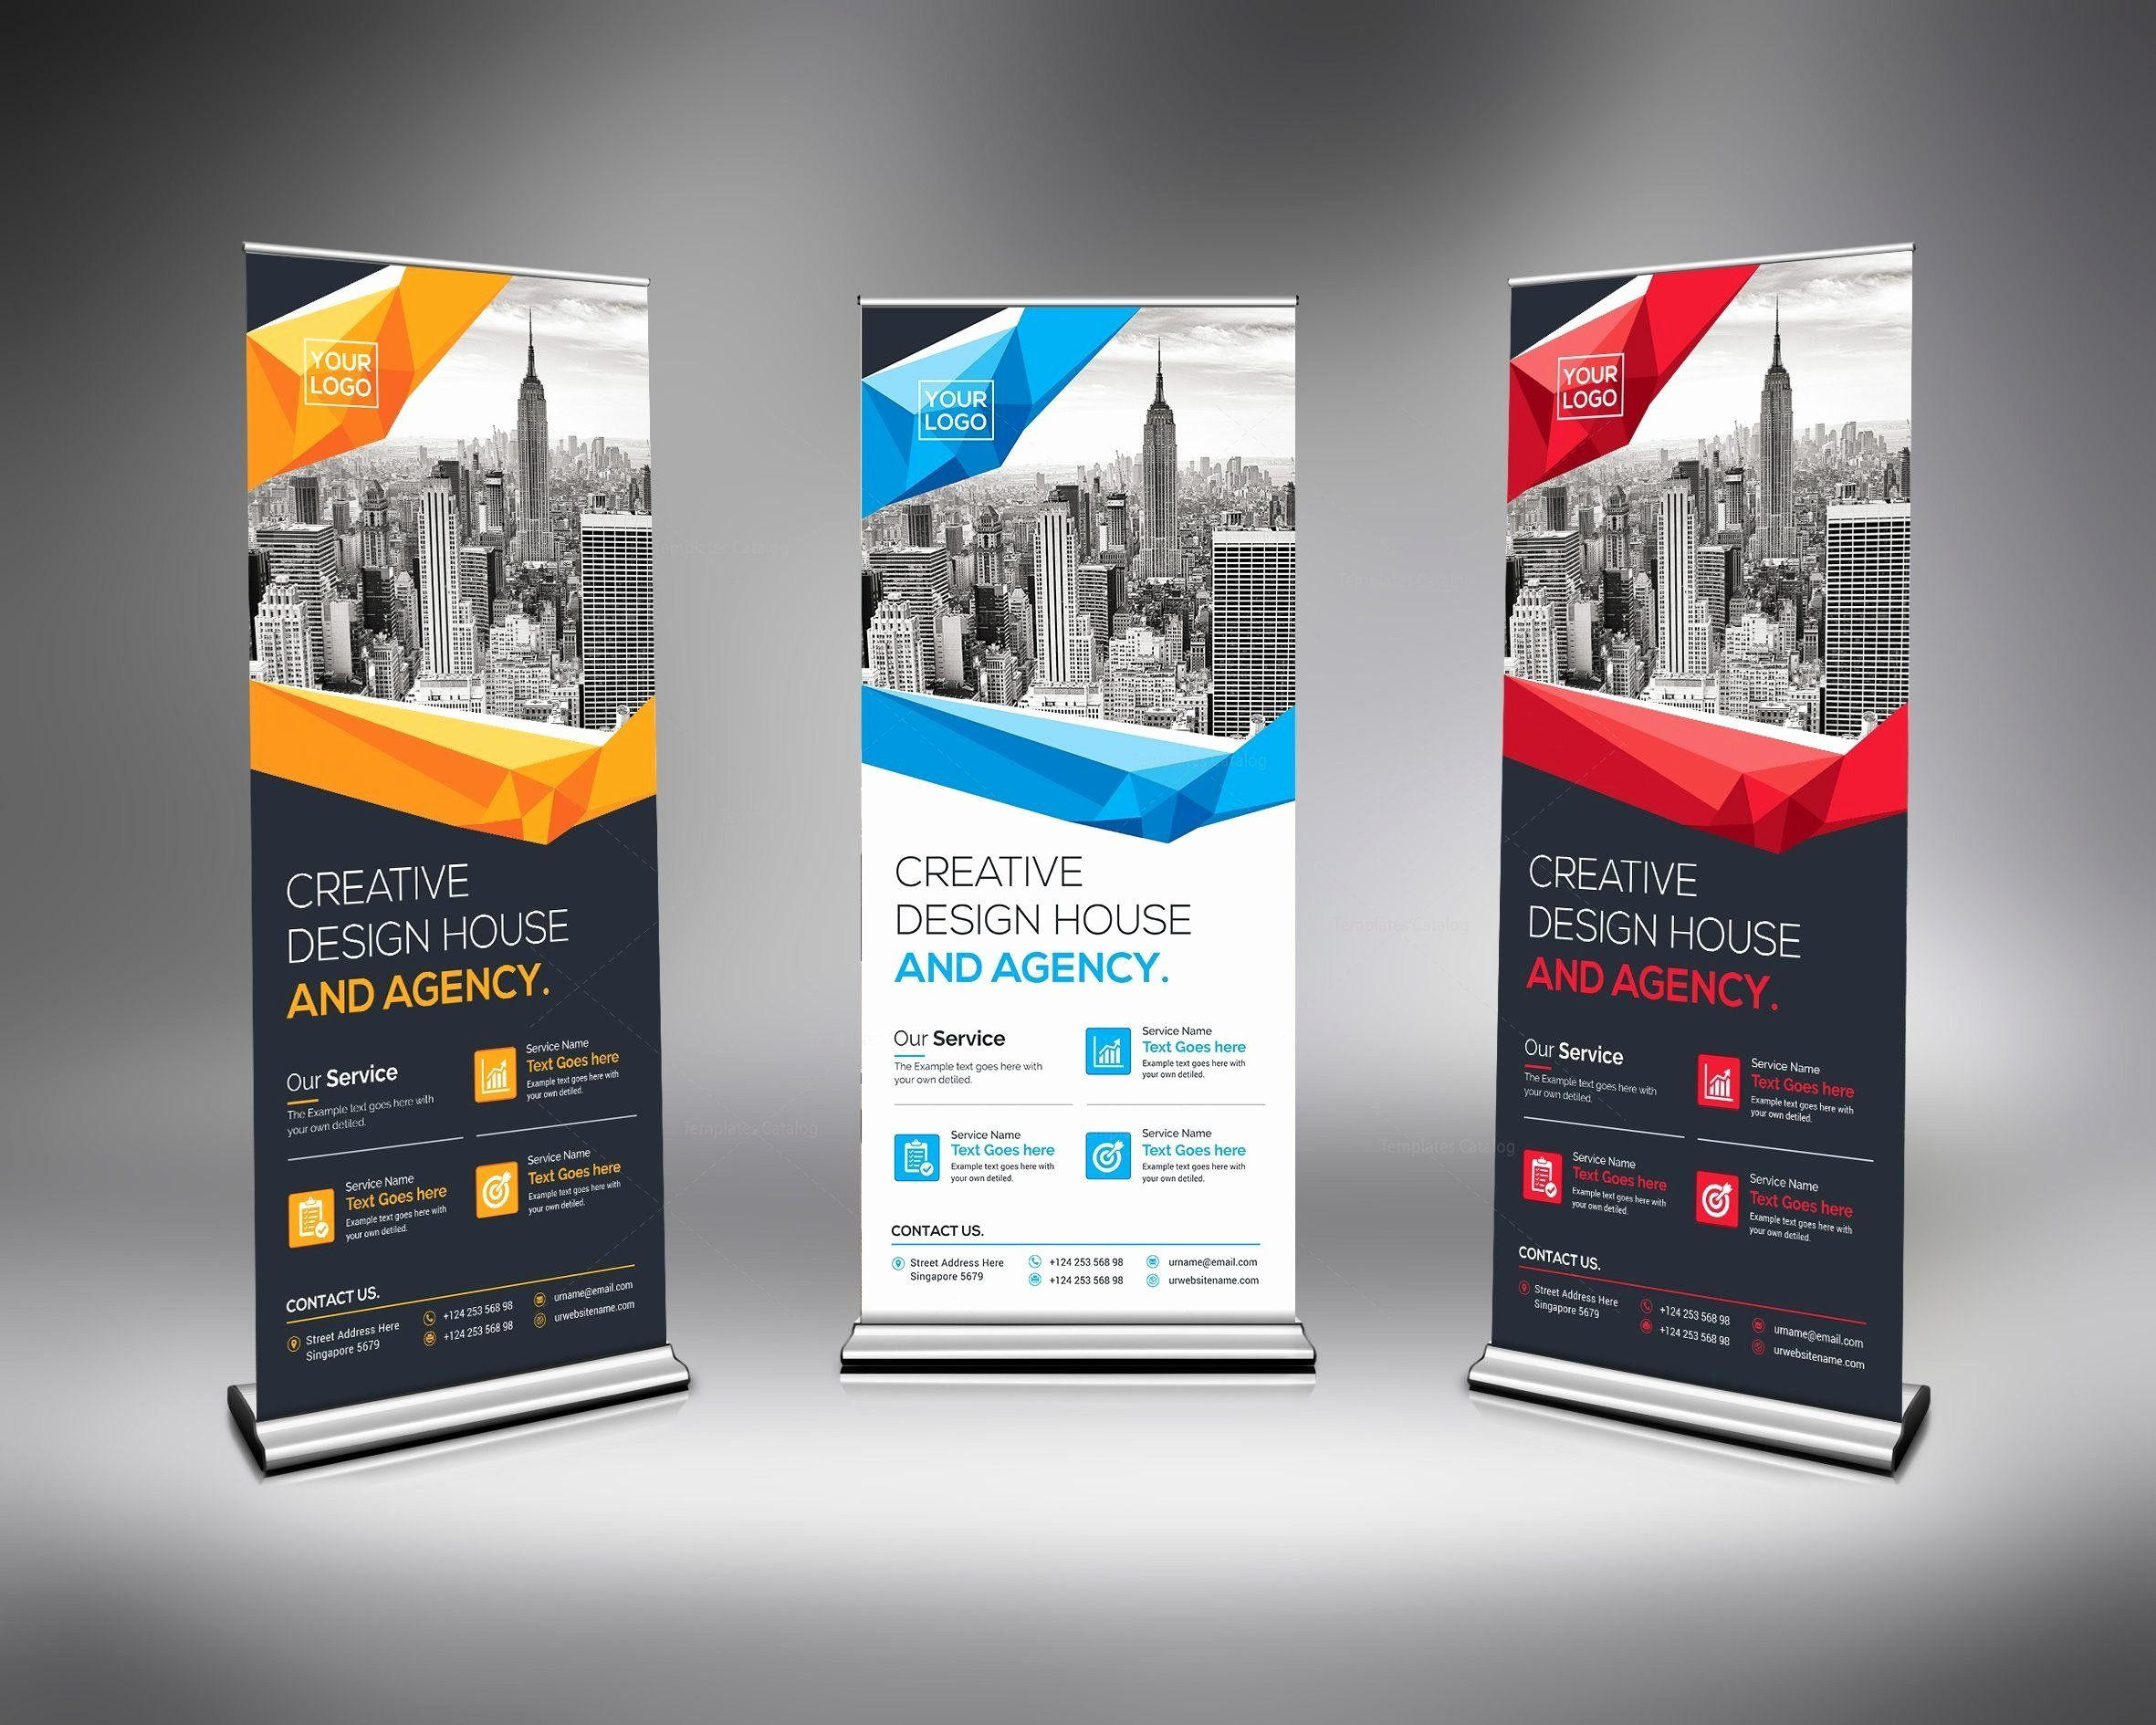 Pop Up Banner Templates Awesome Excellent Rollup Banner Template Template Catalog Banner Design Pop Up Banner Rollup Banner